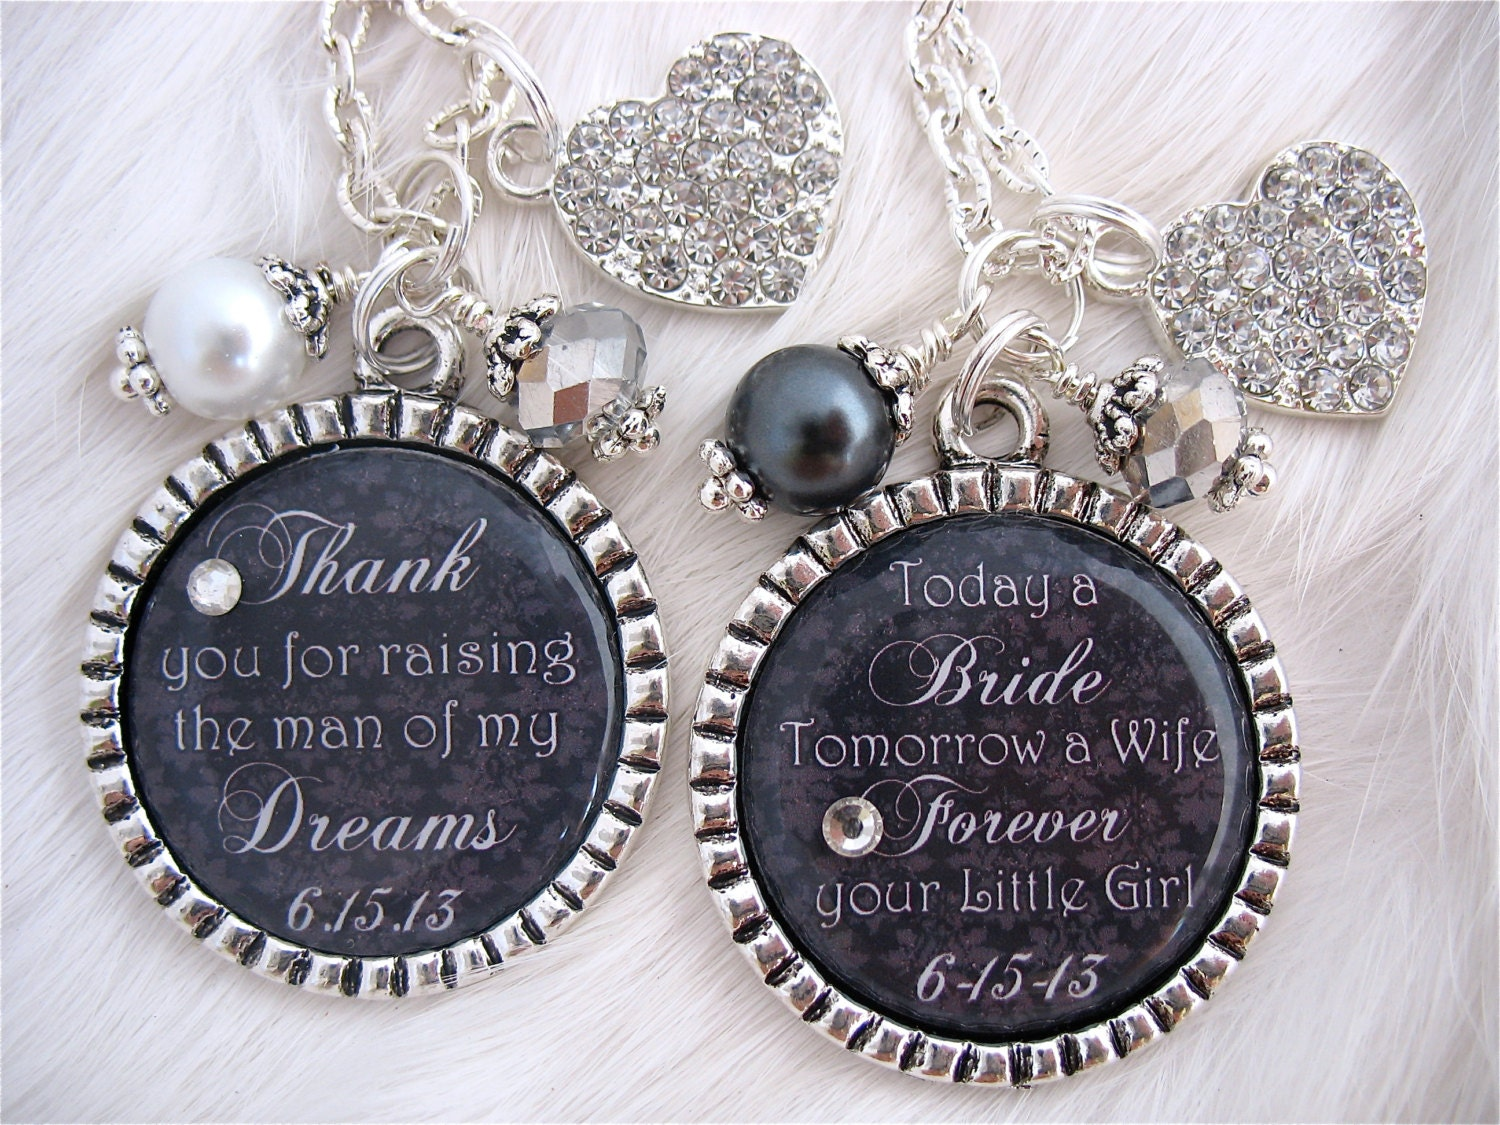 Wedding gifts for bride from mothers